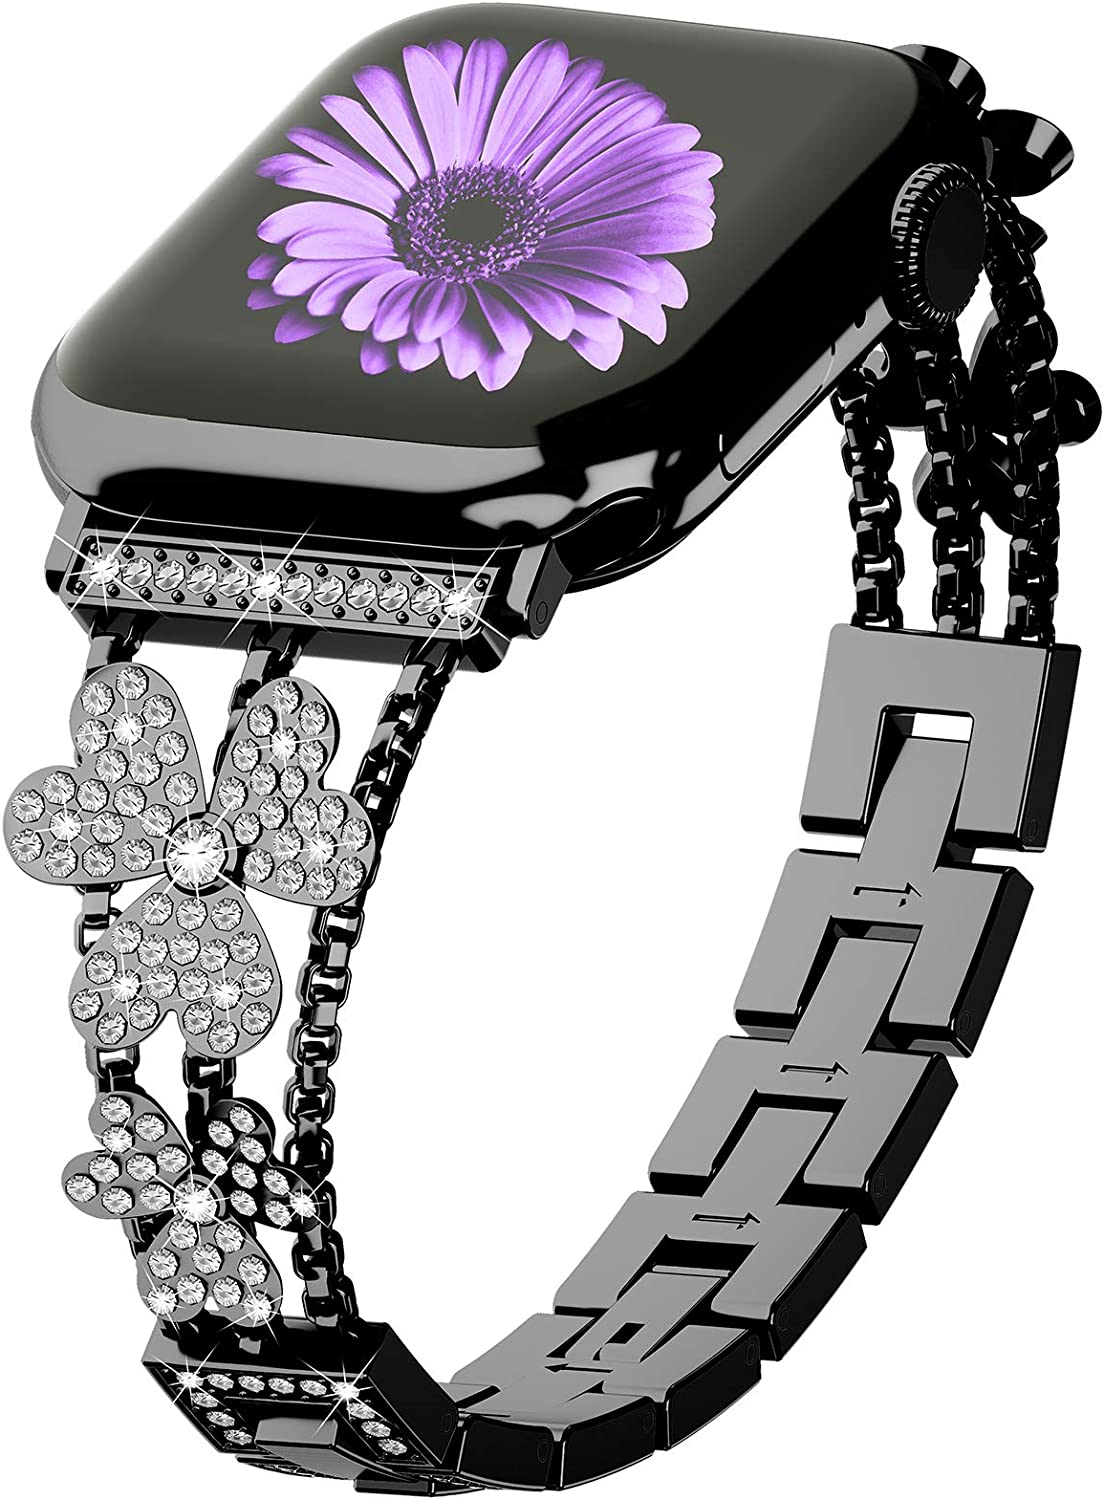 WILNARA Bling Diamond Band Compatible with Apple Watch 44mm 40mm 42mm 38mmThin Bracelet Band with Invisible Adjustable Buckle Clasp for Women Girls iWatch Series6/5/4/3/2/1/SE -Rose Silver Black